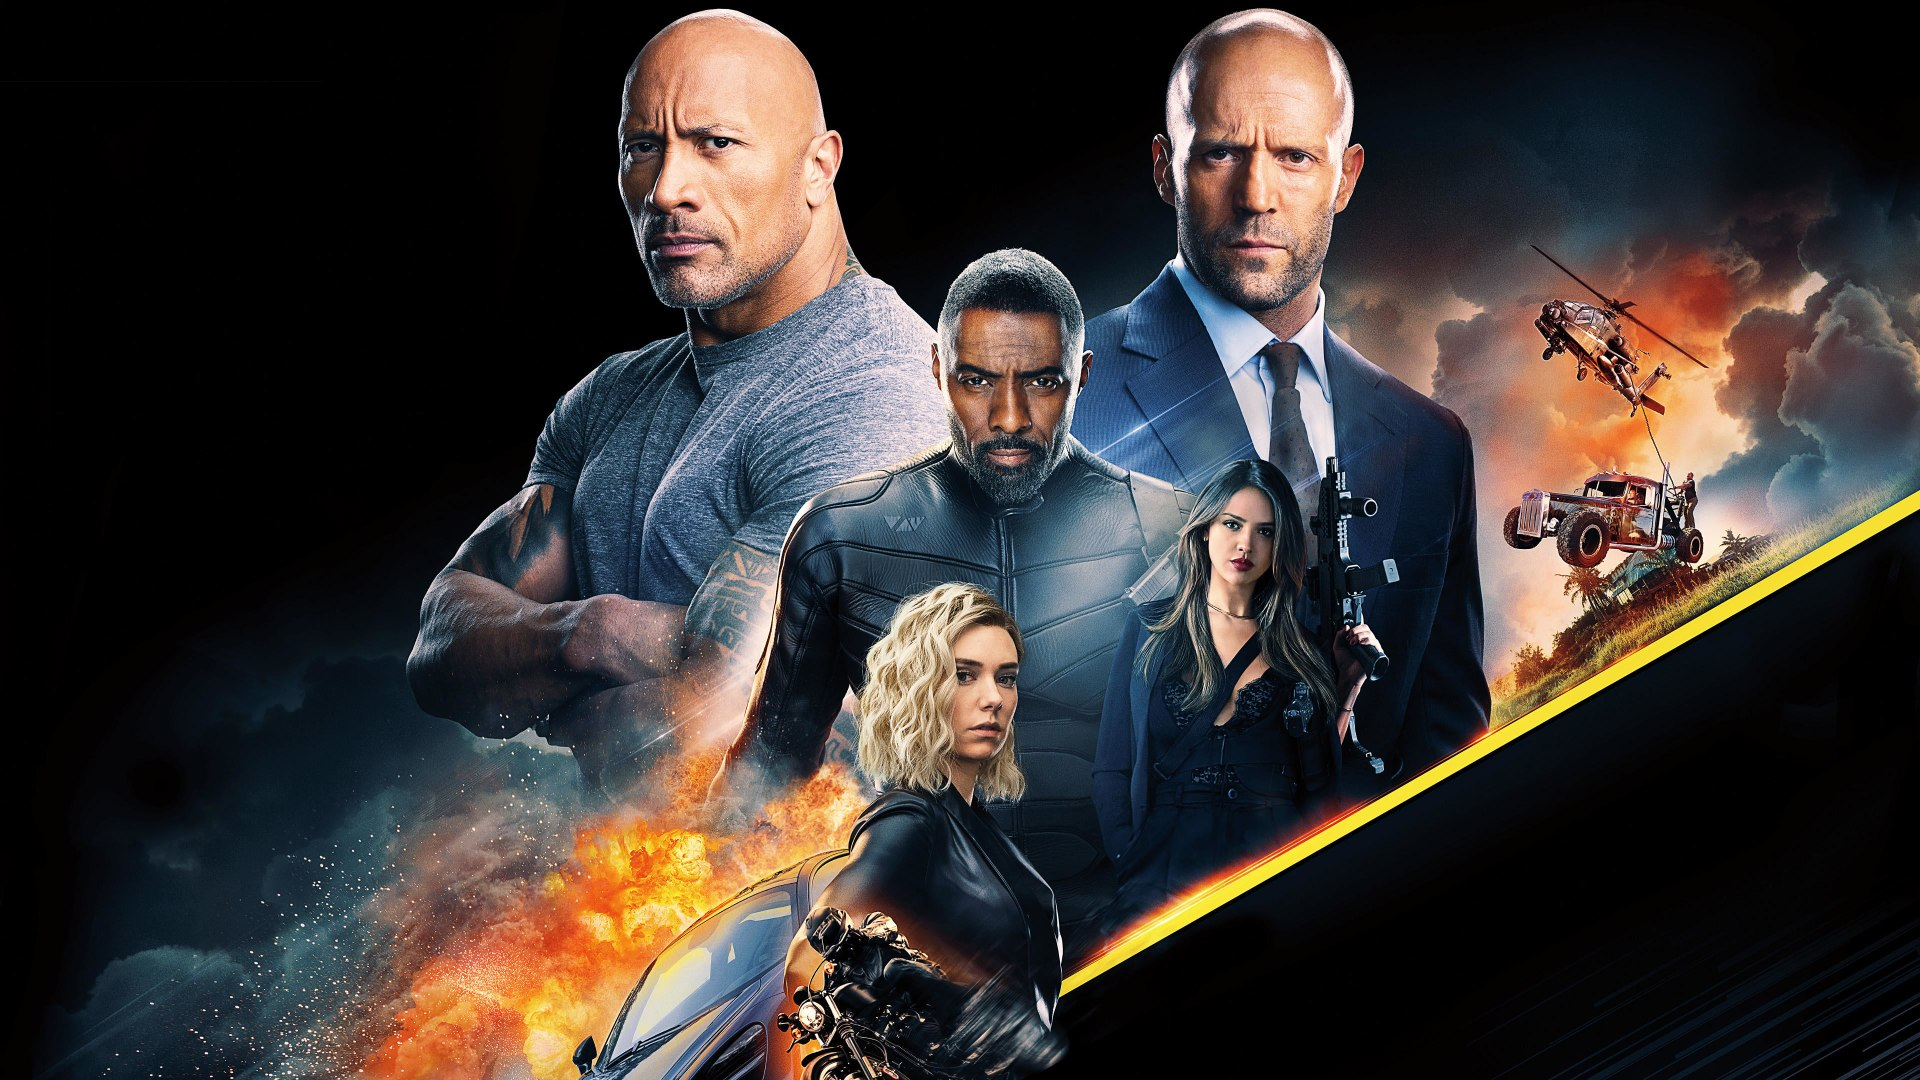 Weekend Box Office: August 2 to 4 (2019) Hobbs & Shaw, The Lion King, Once Upon a Time ... in Ho